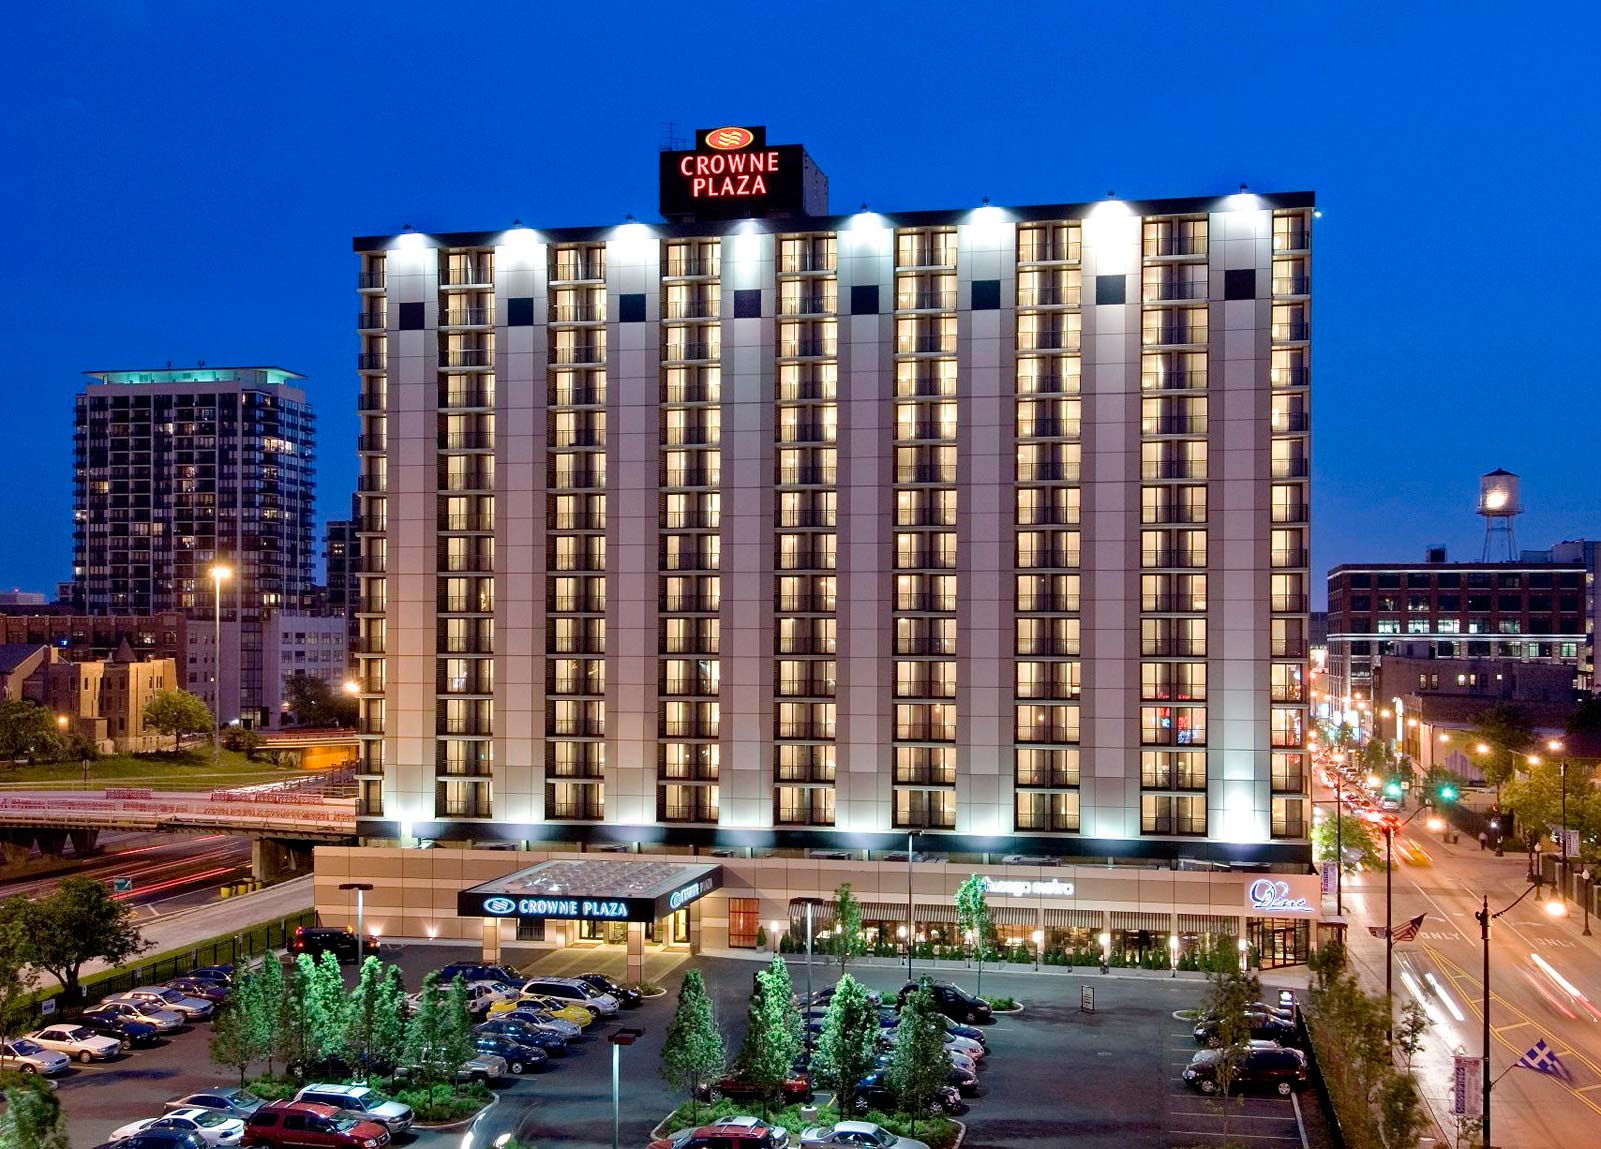 Crowne Plaza Casino